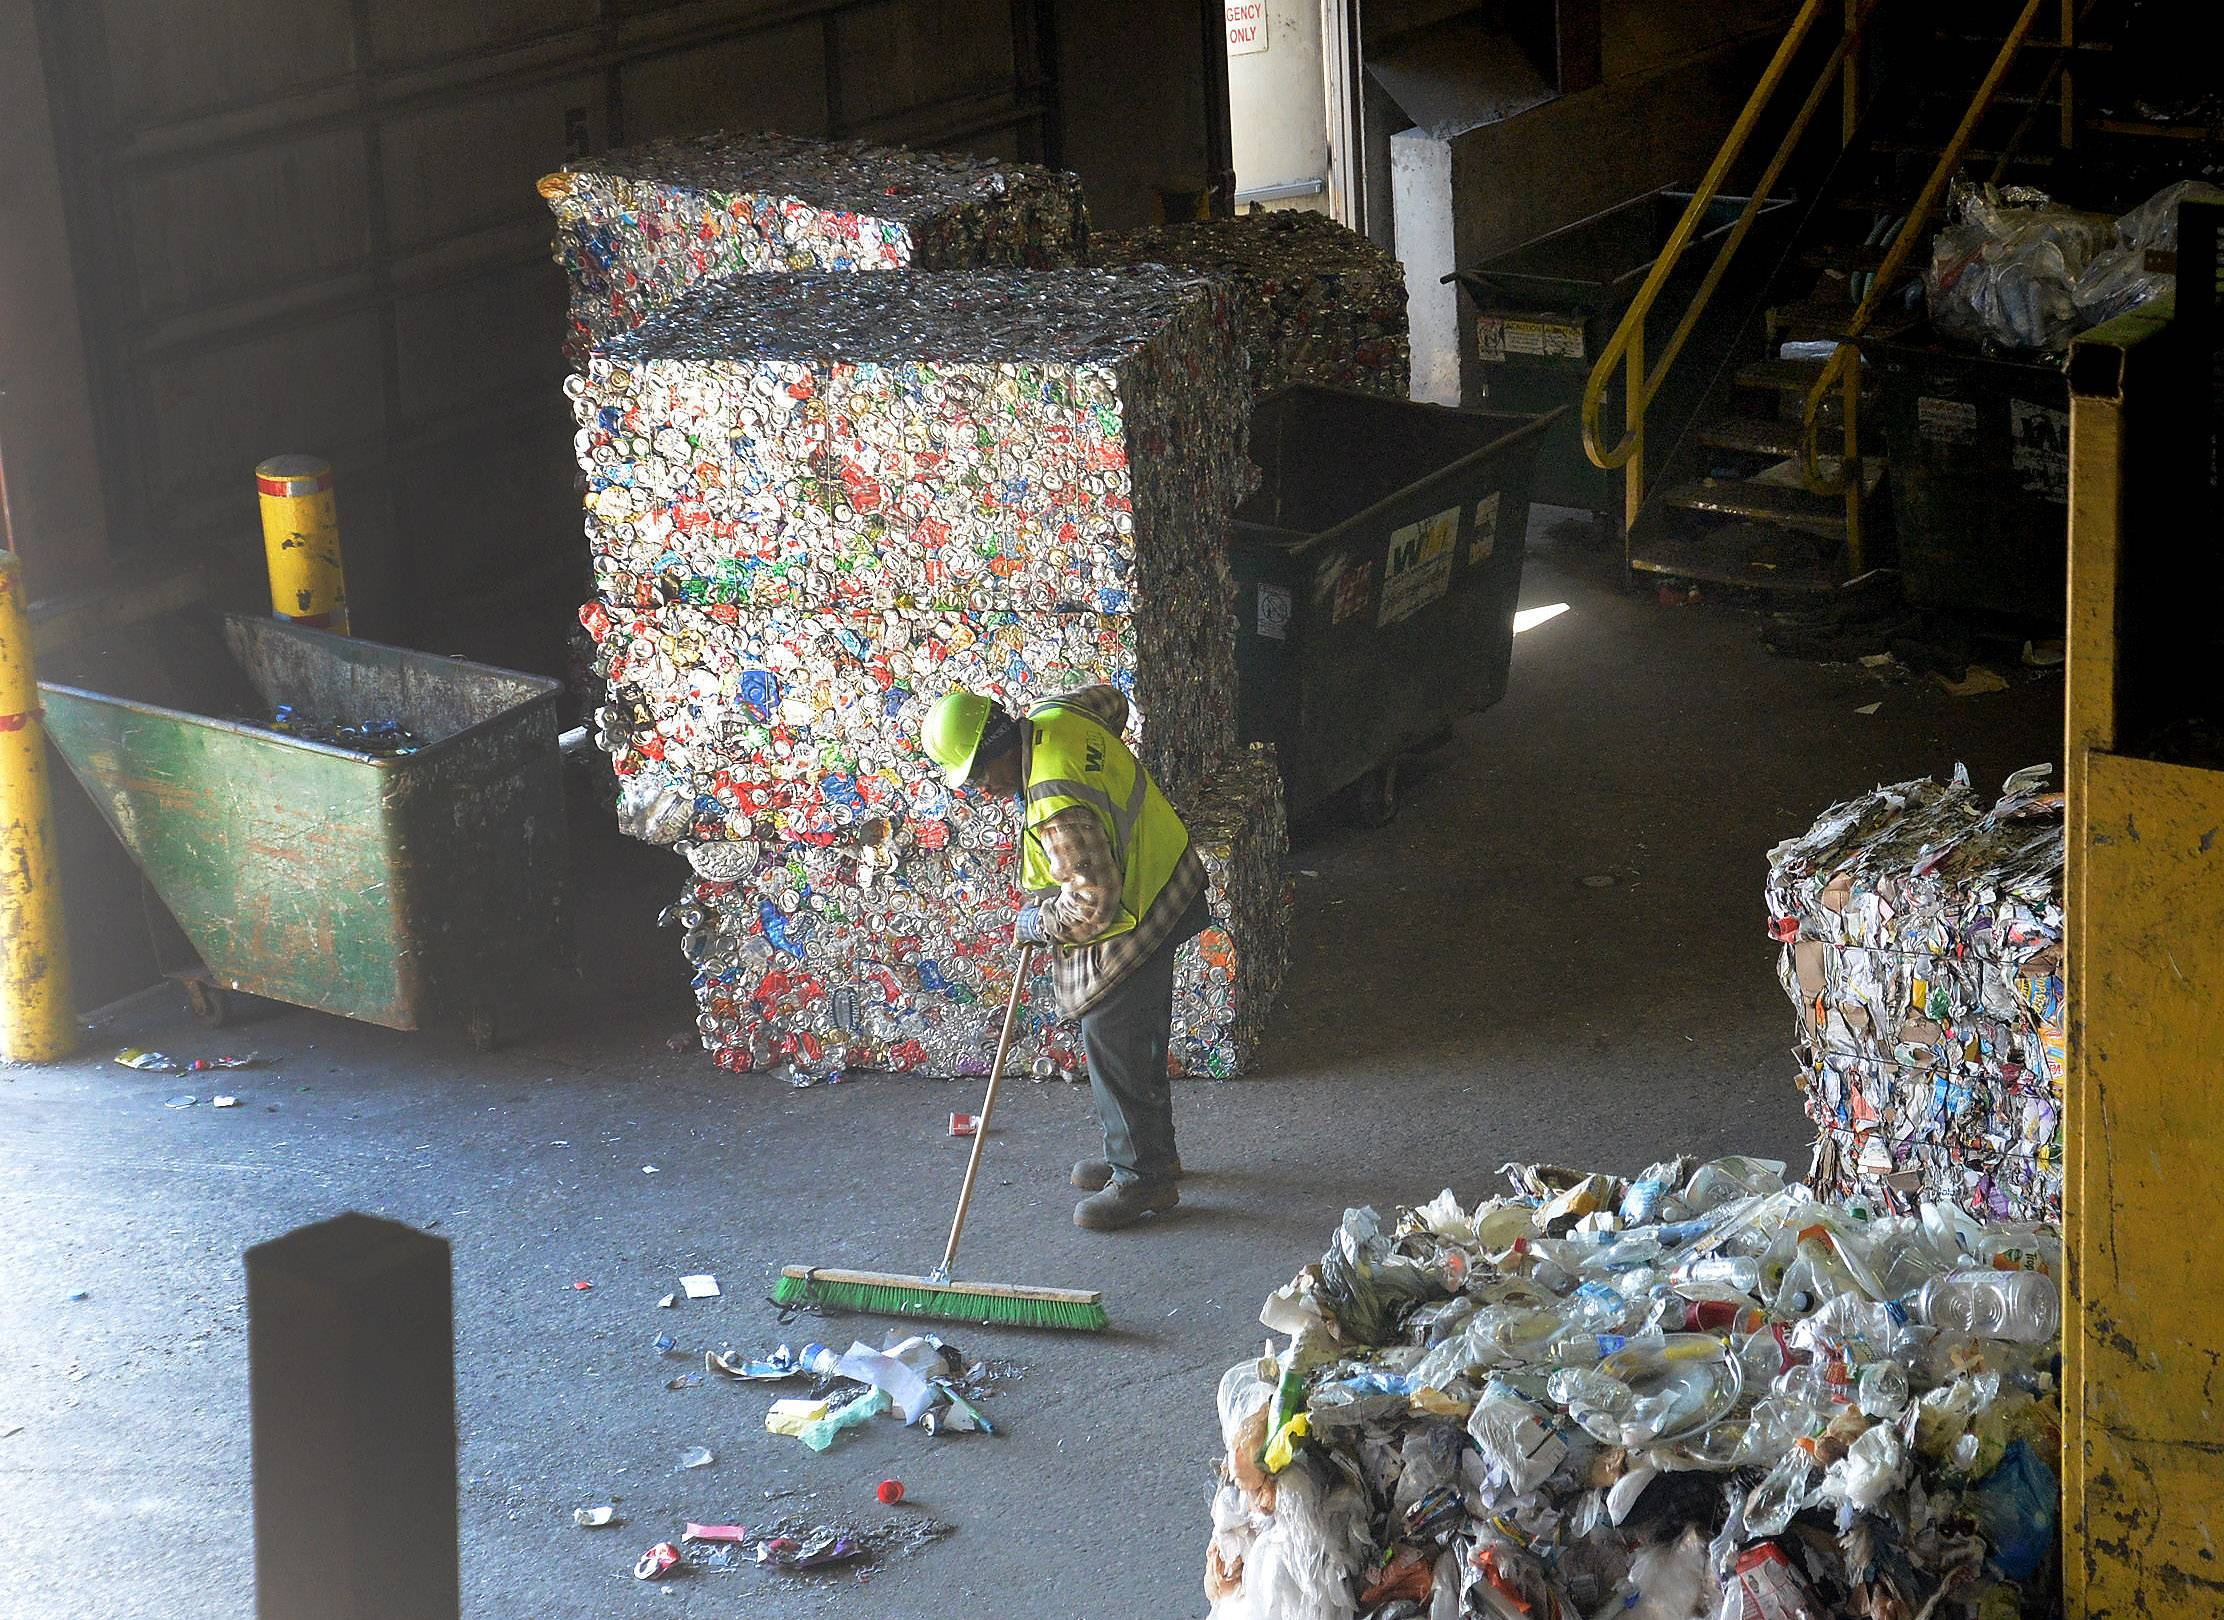 A man sweeps up at the Waste Management recycling facility in Grayslake.